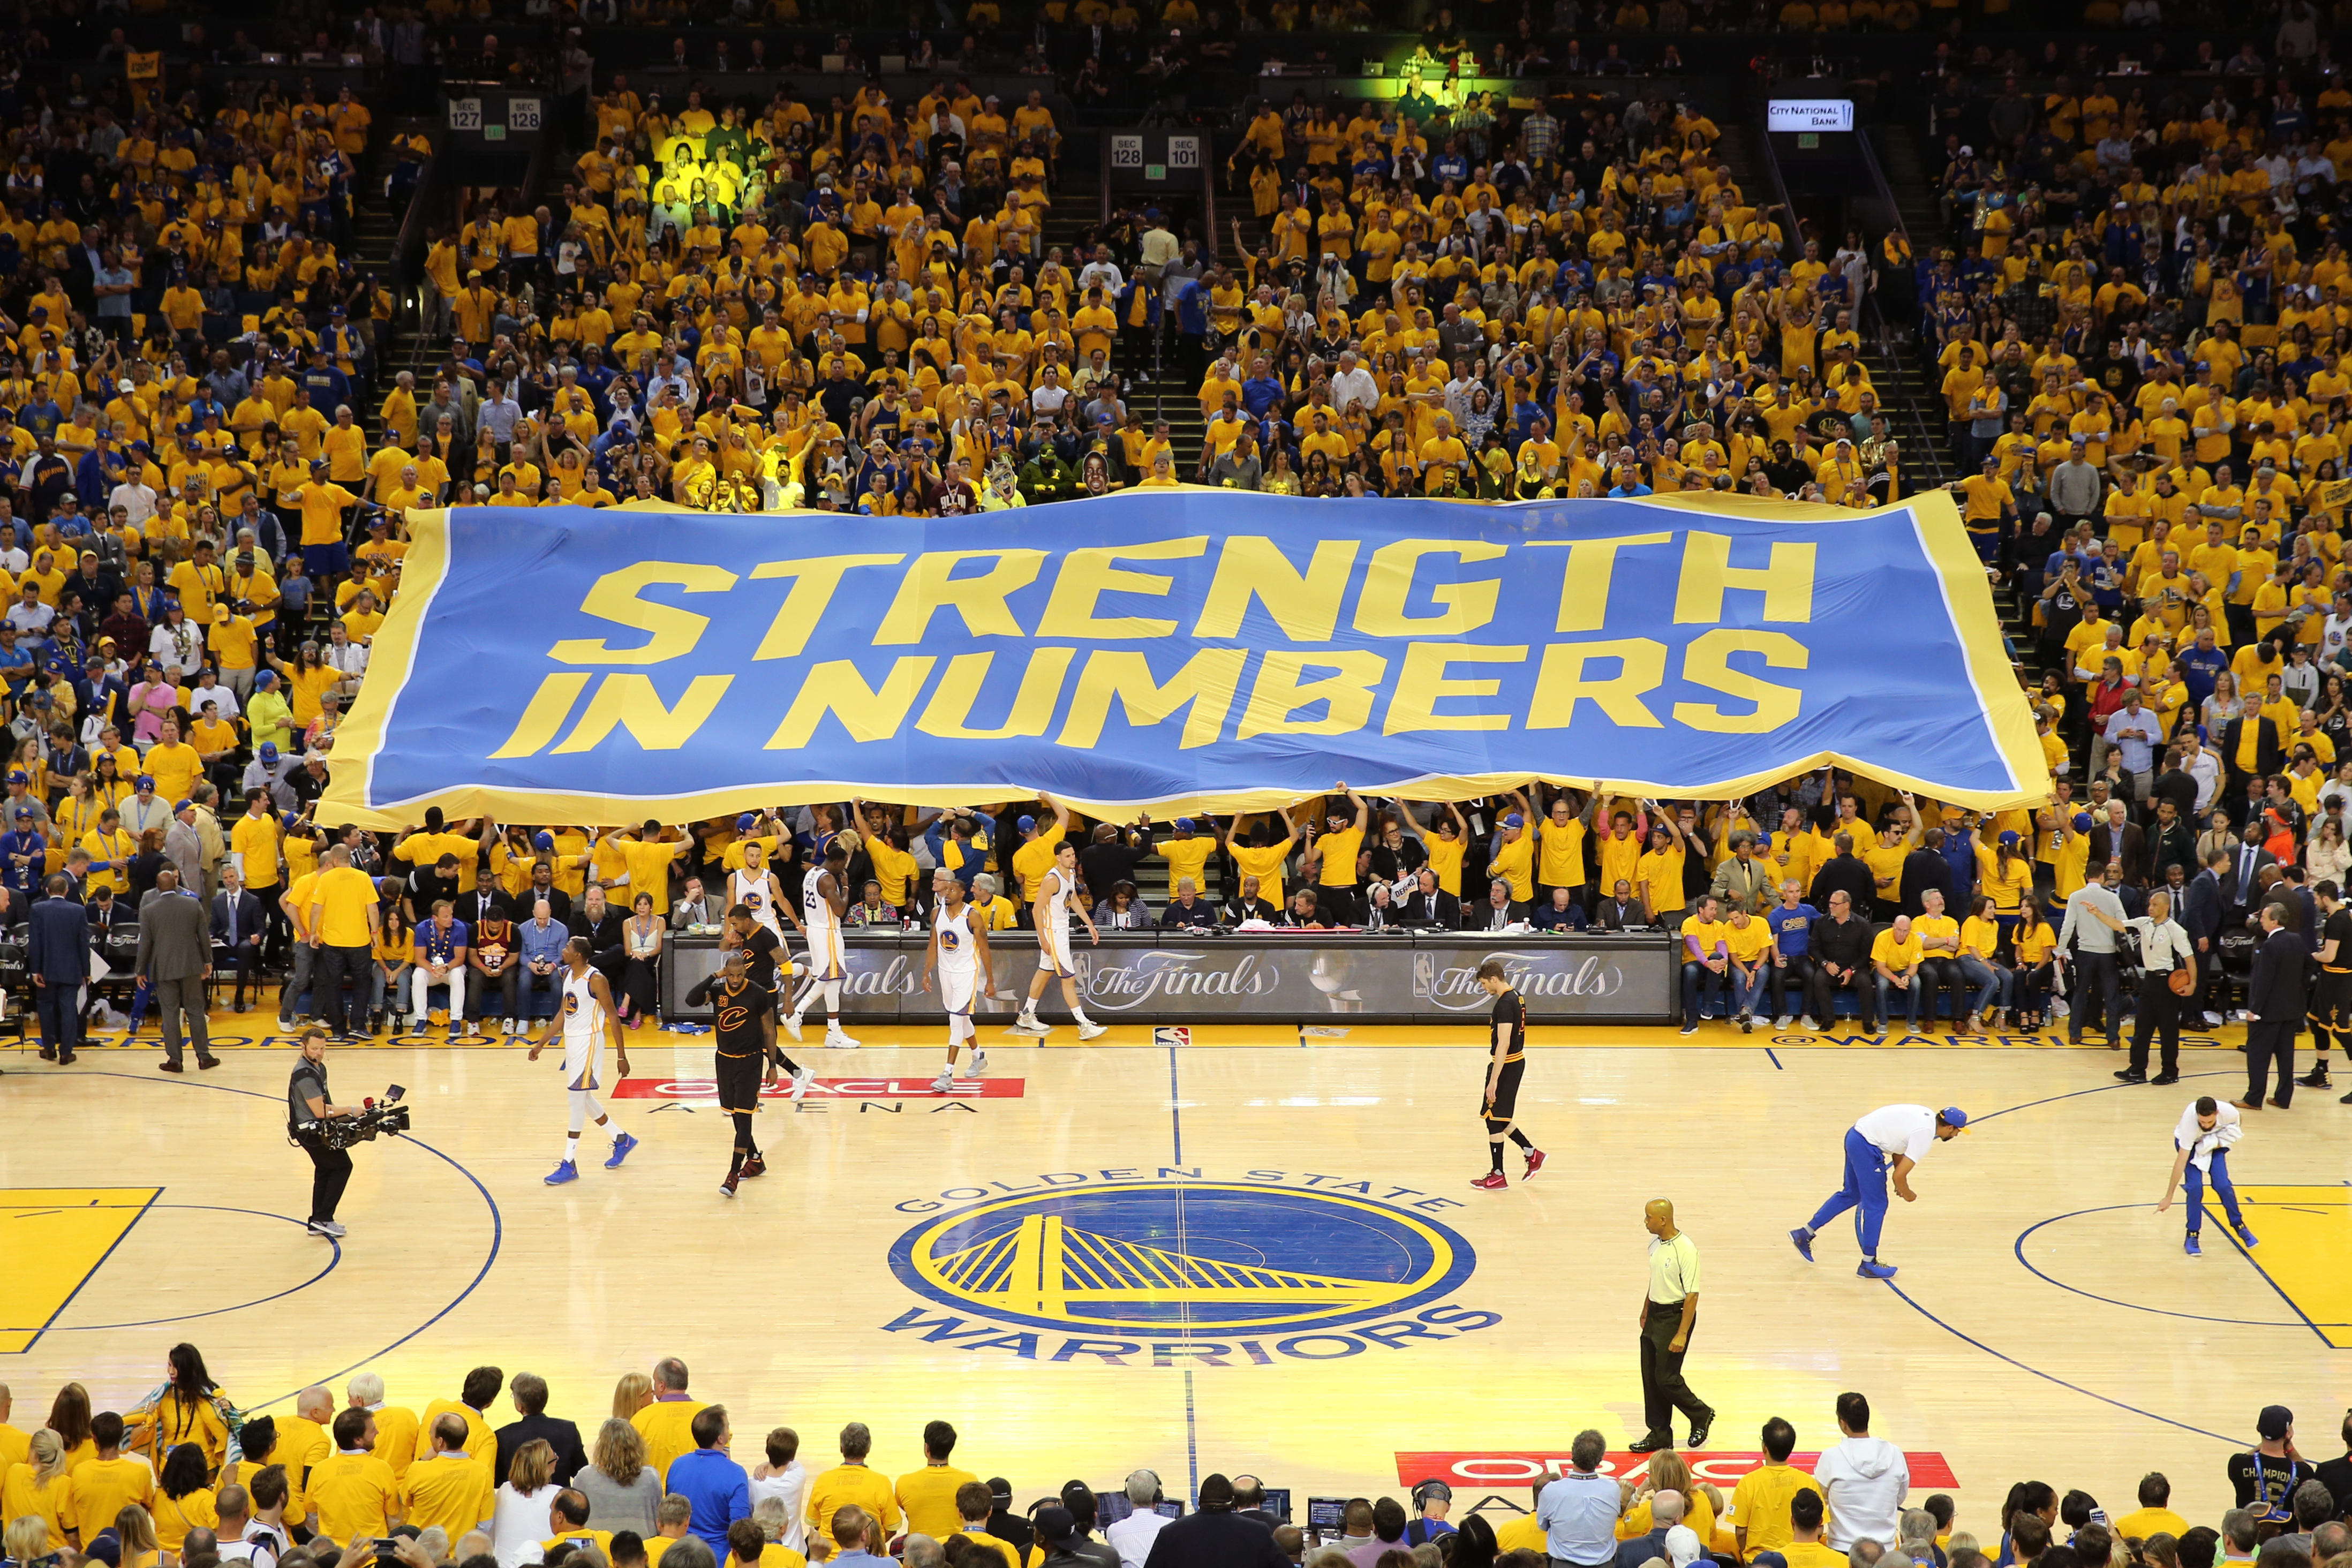 Fandom 250: The case for the Golden State Warriors as the best fans